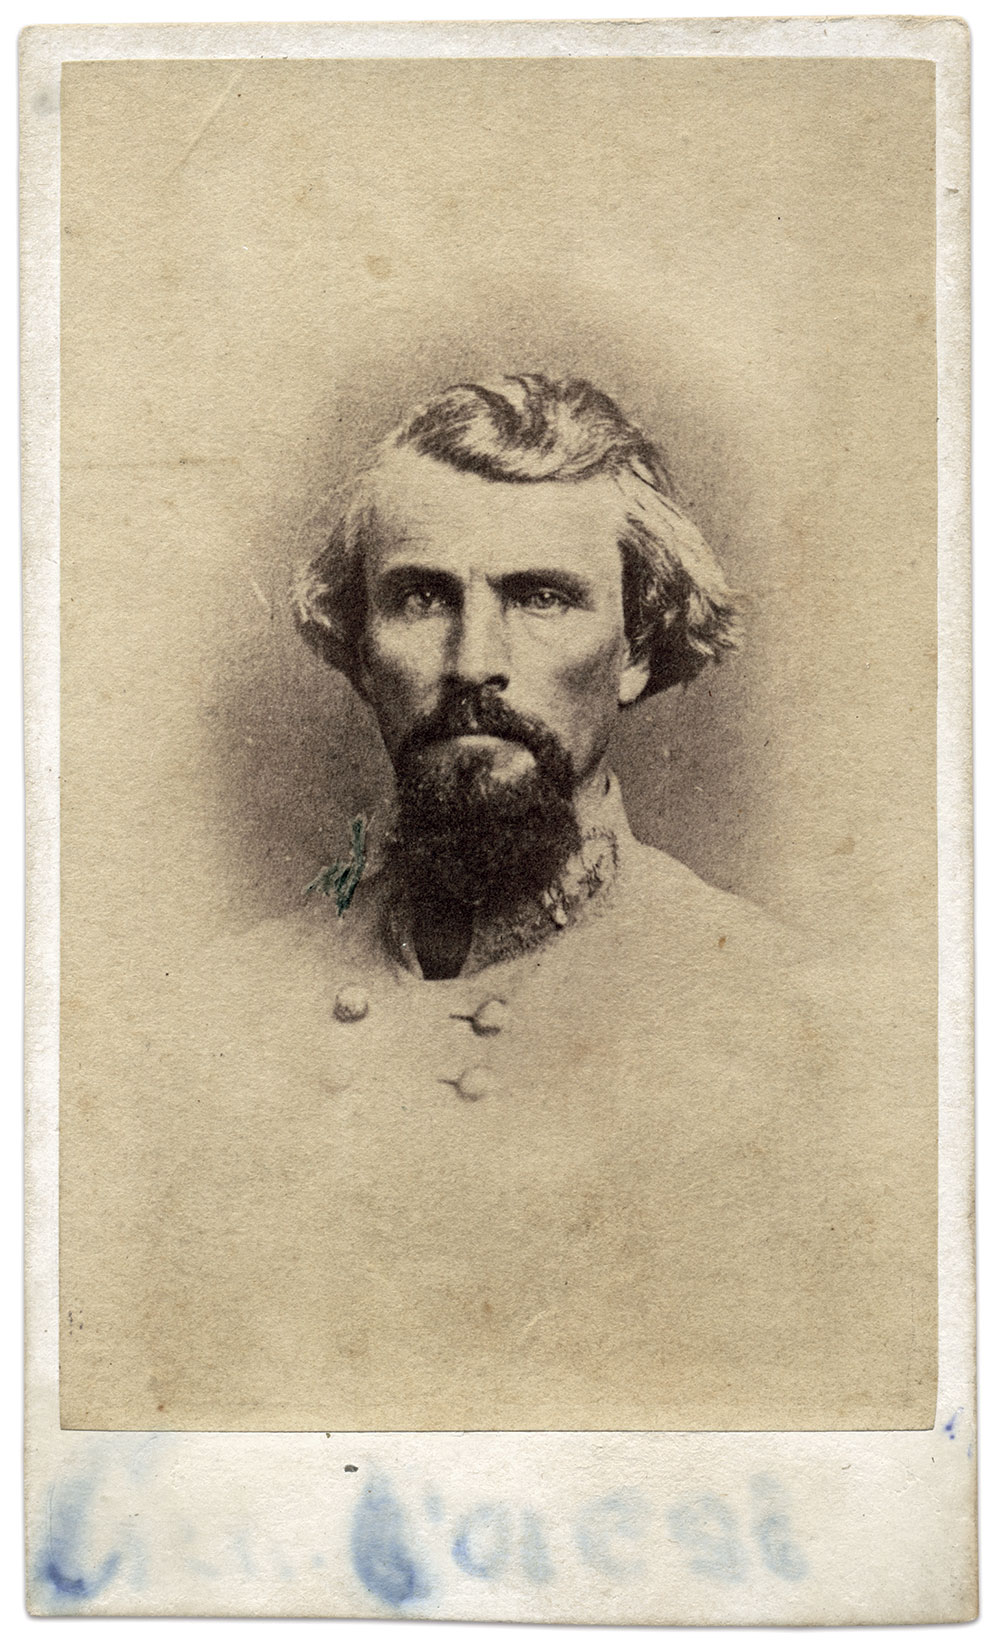 Carte de visite by Richard Wearn of Columbia, S.C. Steve and Mike Romano Collection.